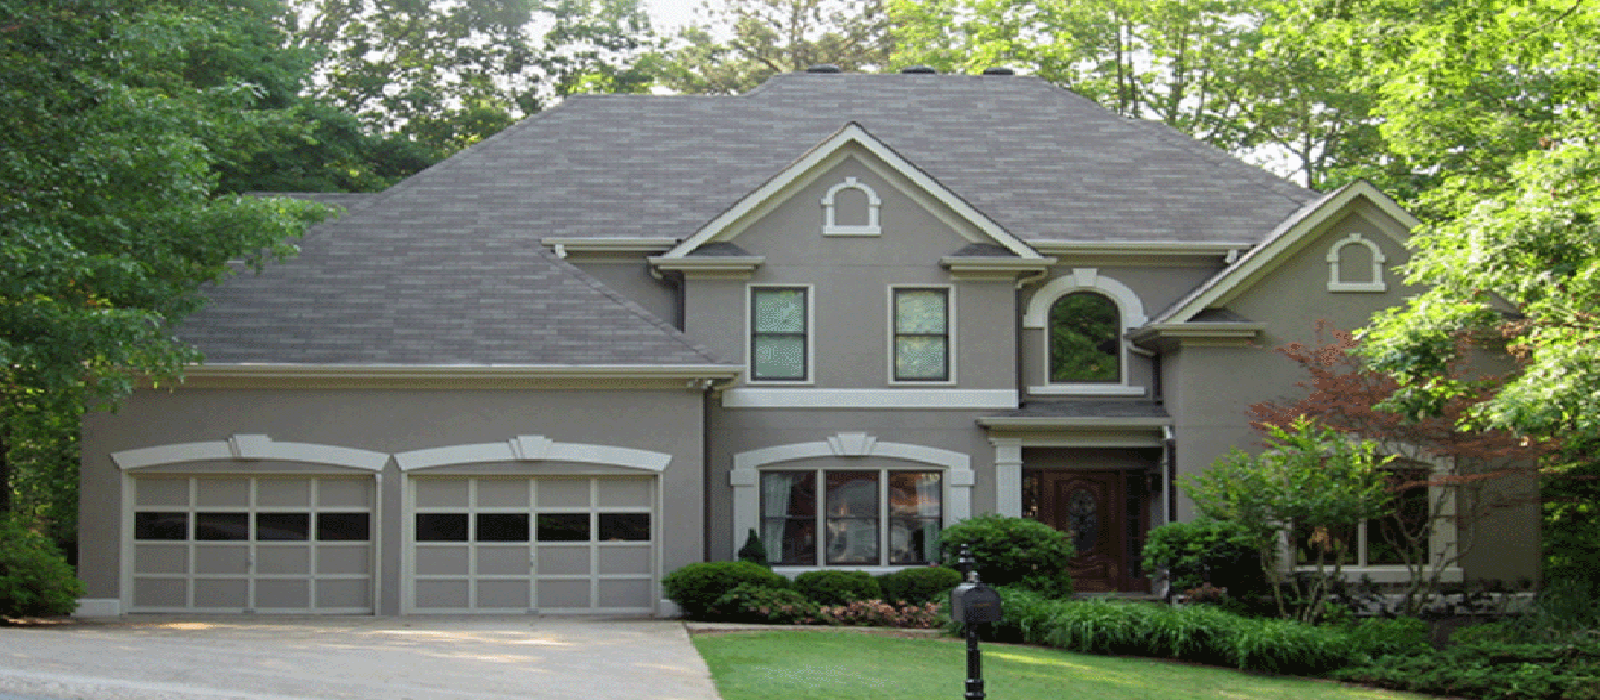 Painters overland park ks exterior house painting contractors for Exterior home painting